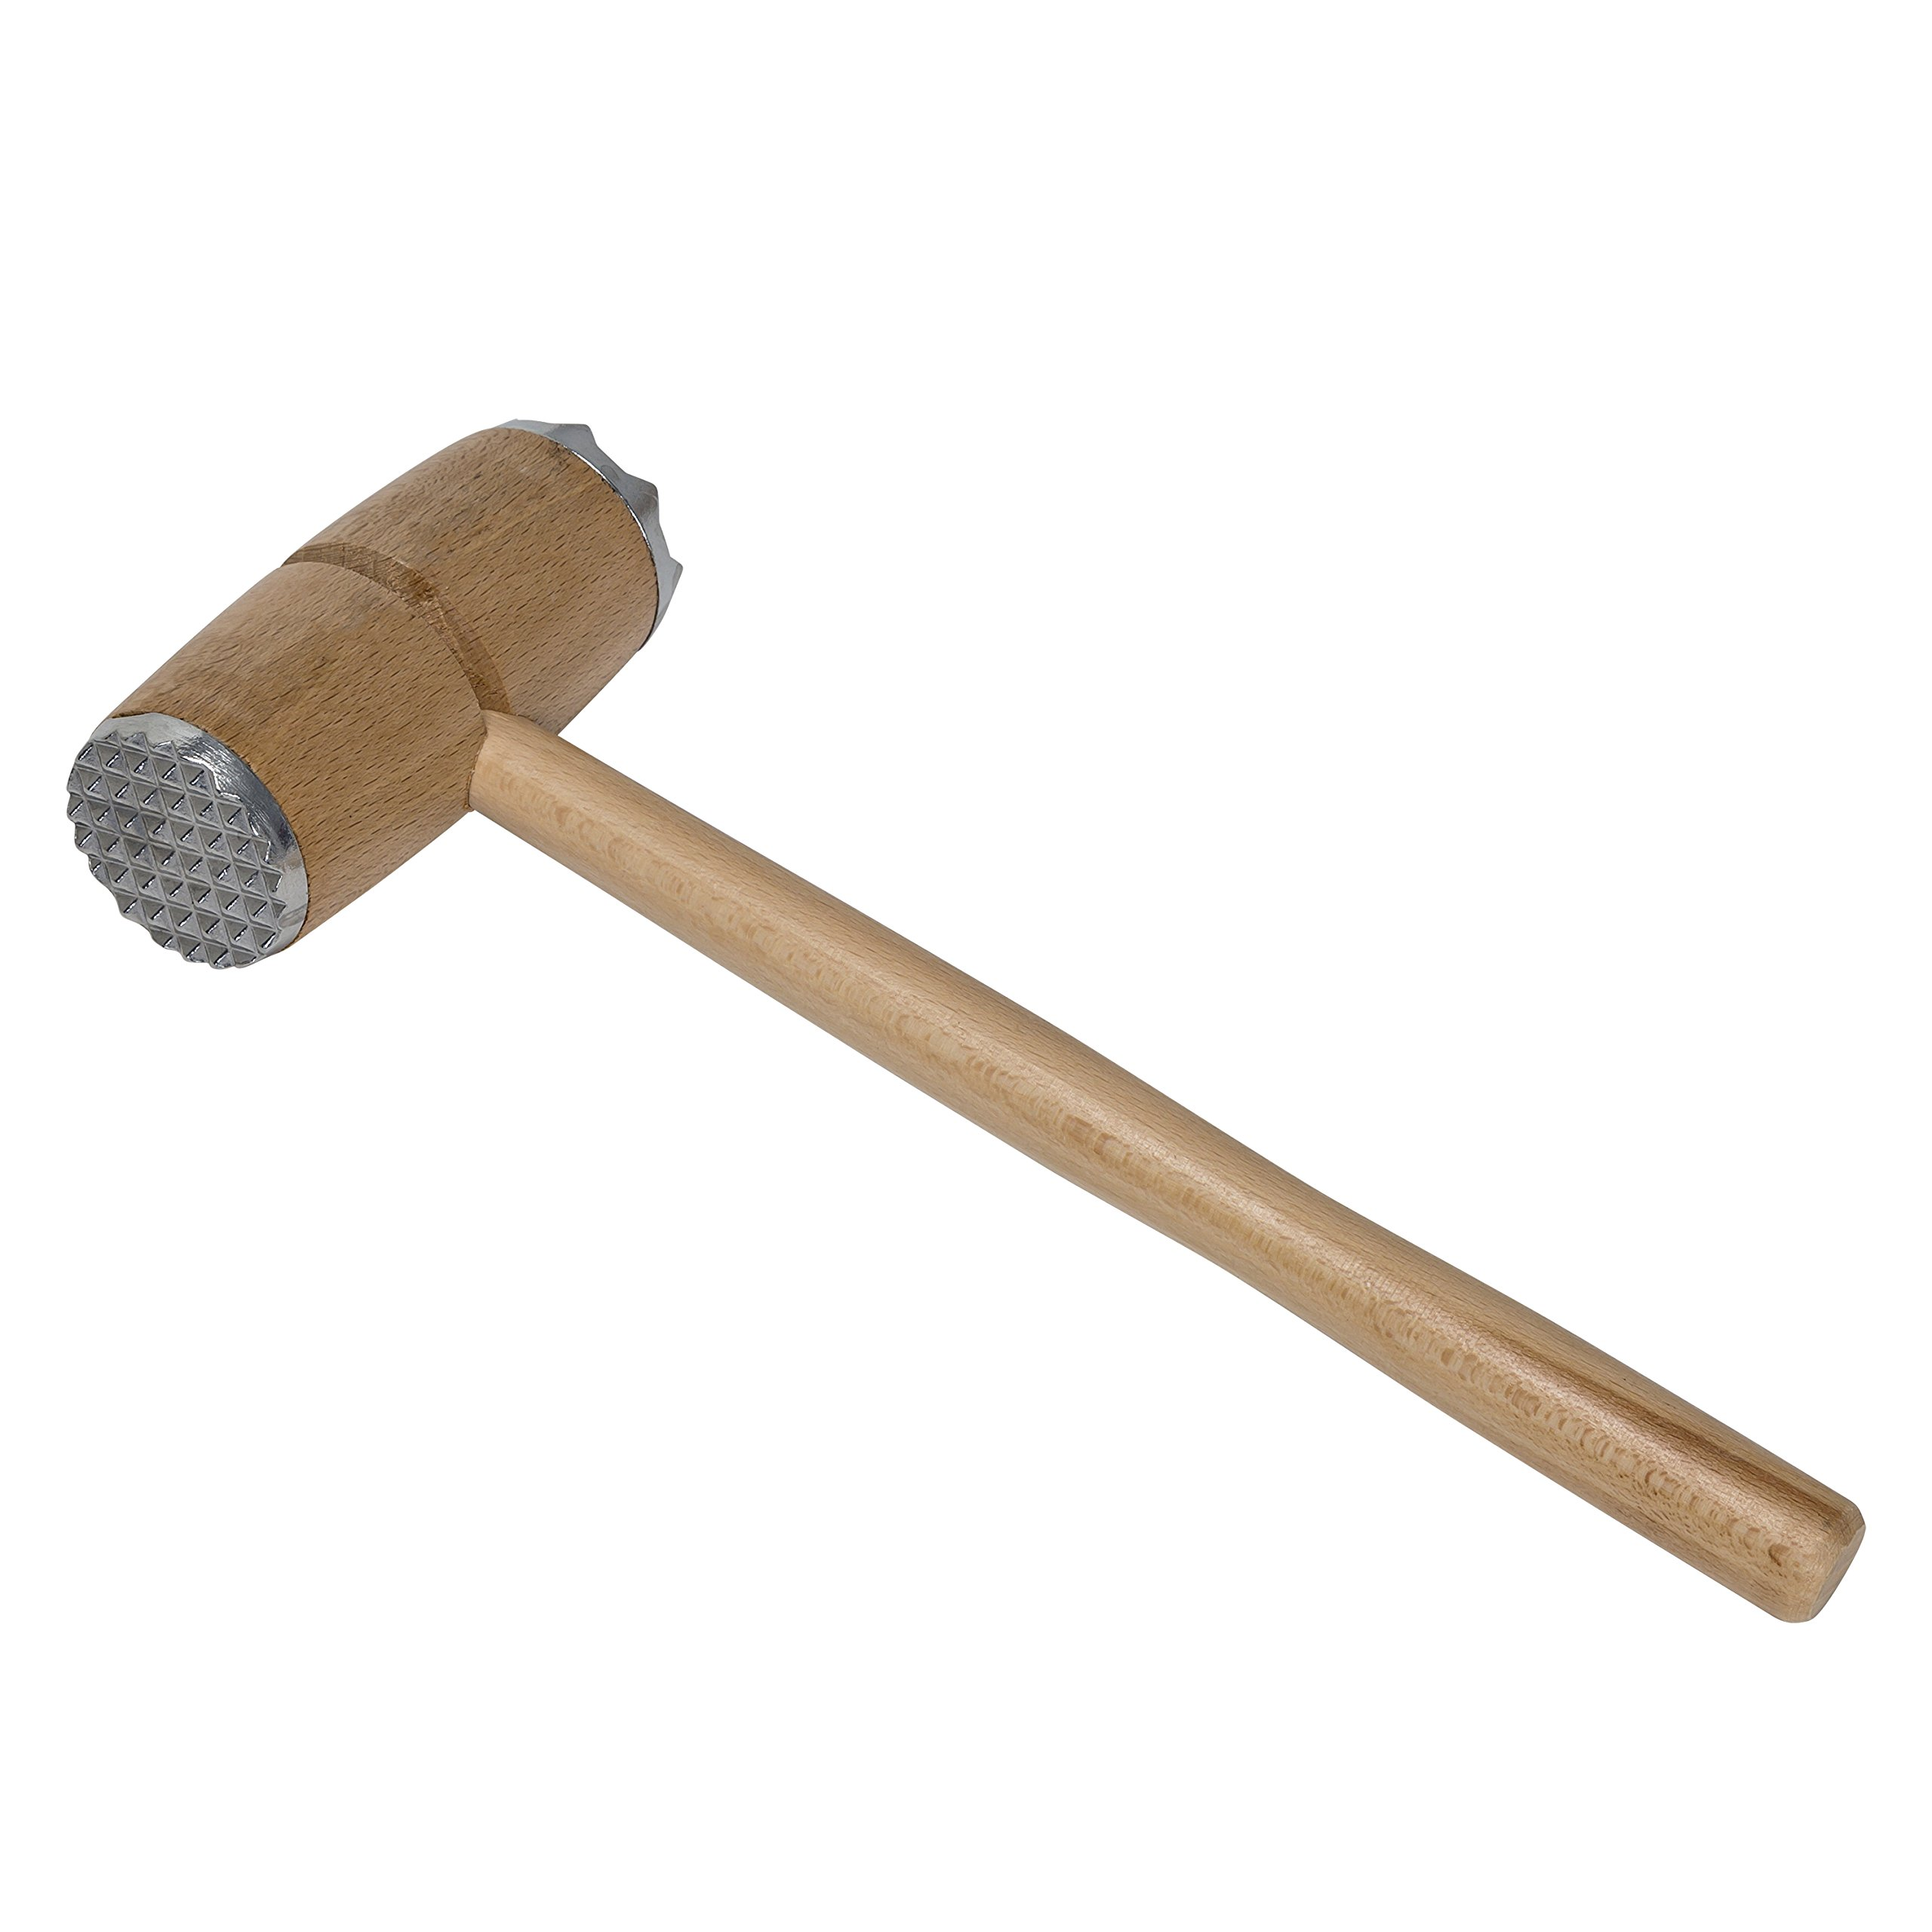 Honey-Can-Do 6012 Beech Wood Meat Tenderizer with Aluminum Heads, 12-Inches